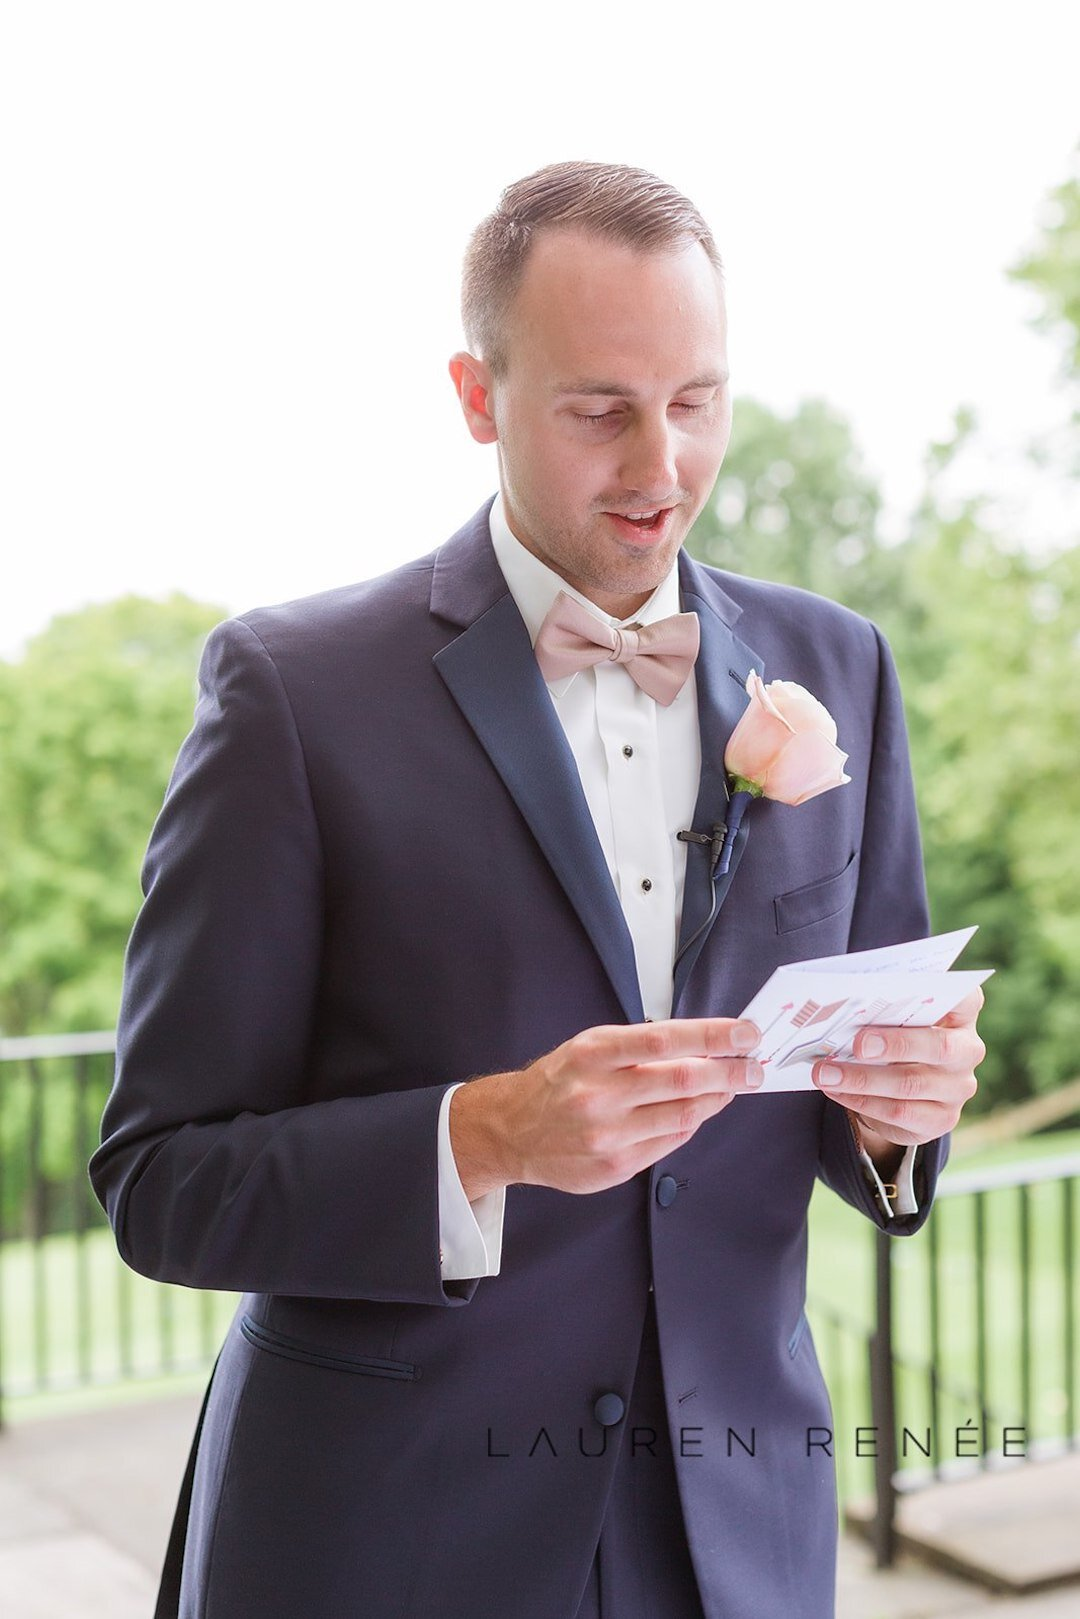 Wedding day gifts for the groom: Romantic Blush Wedding at the Pittsburgh Field Club planned by Exhale Events. See more at exhale-events.com!